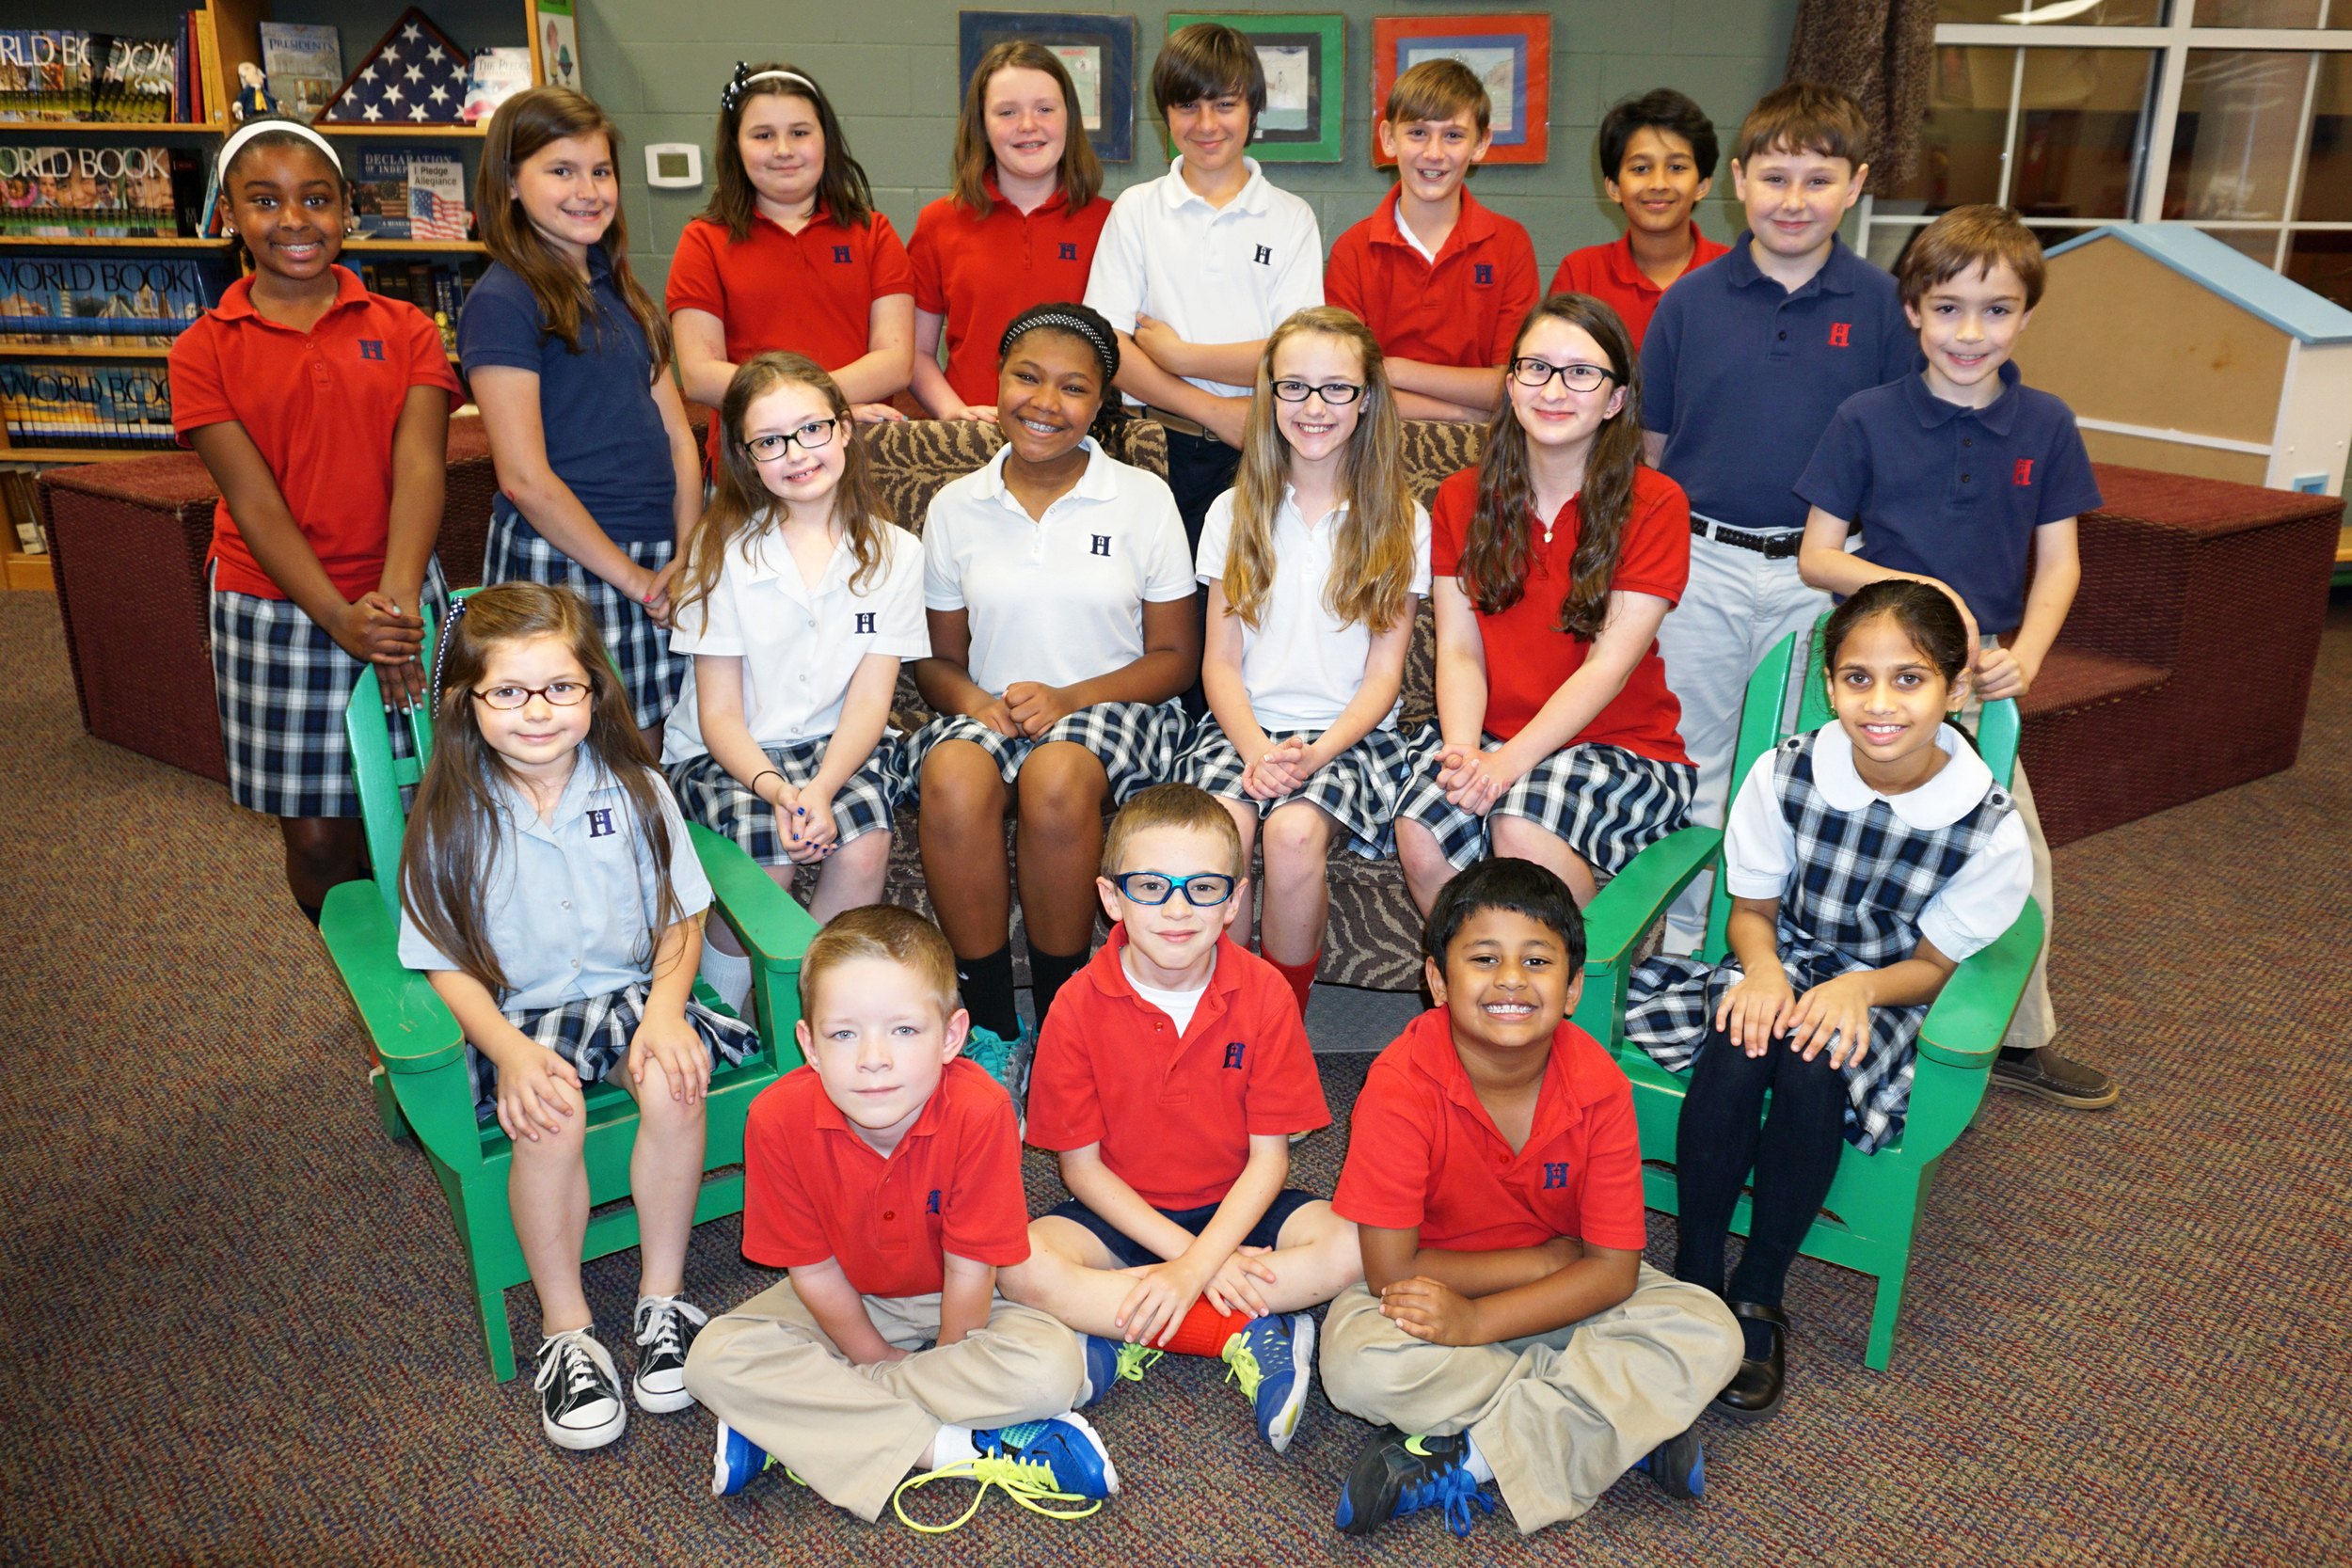 Back row (l to r): Chelsea Bass (3), Erin Sharp (4), Zoe Vales (4), Karigan Bartlett (4), Tanner Howell (6), Caleb Adams (5), Ronak Karuhatty (5), Austin Opler (5), Jonathan Mohler (2) Middle row (l to r): Isabelle Terry (SK), Willow Blythe (5), Camille Carter (6), Katie Cooper (5), Betsy Kohn (6), Naatya Kudumula (1) Front row ( to r): Ian Adams (SK), Logan Carr (2), Ivan Dam (1) Not pictured: Katie Savage (4)